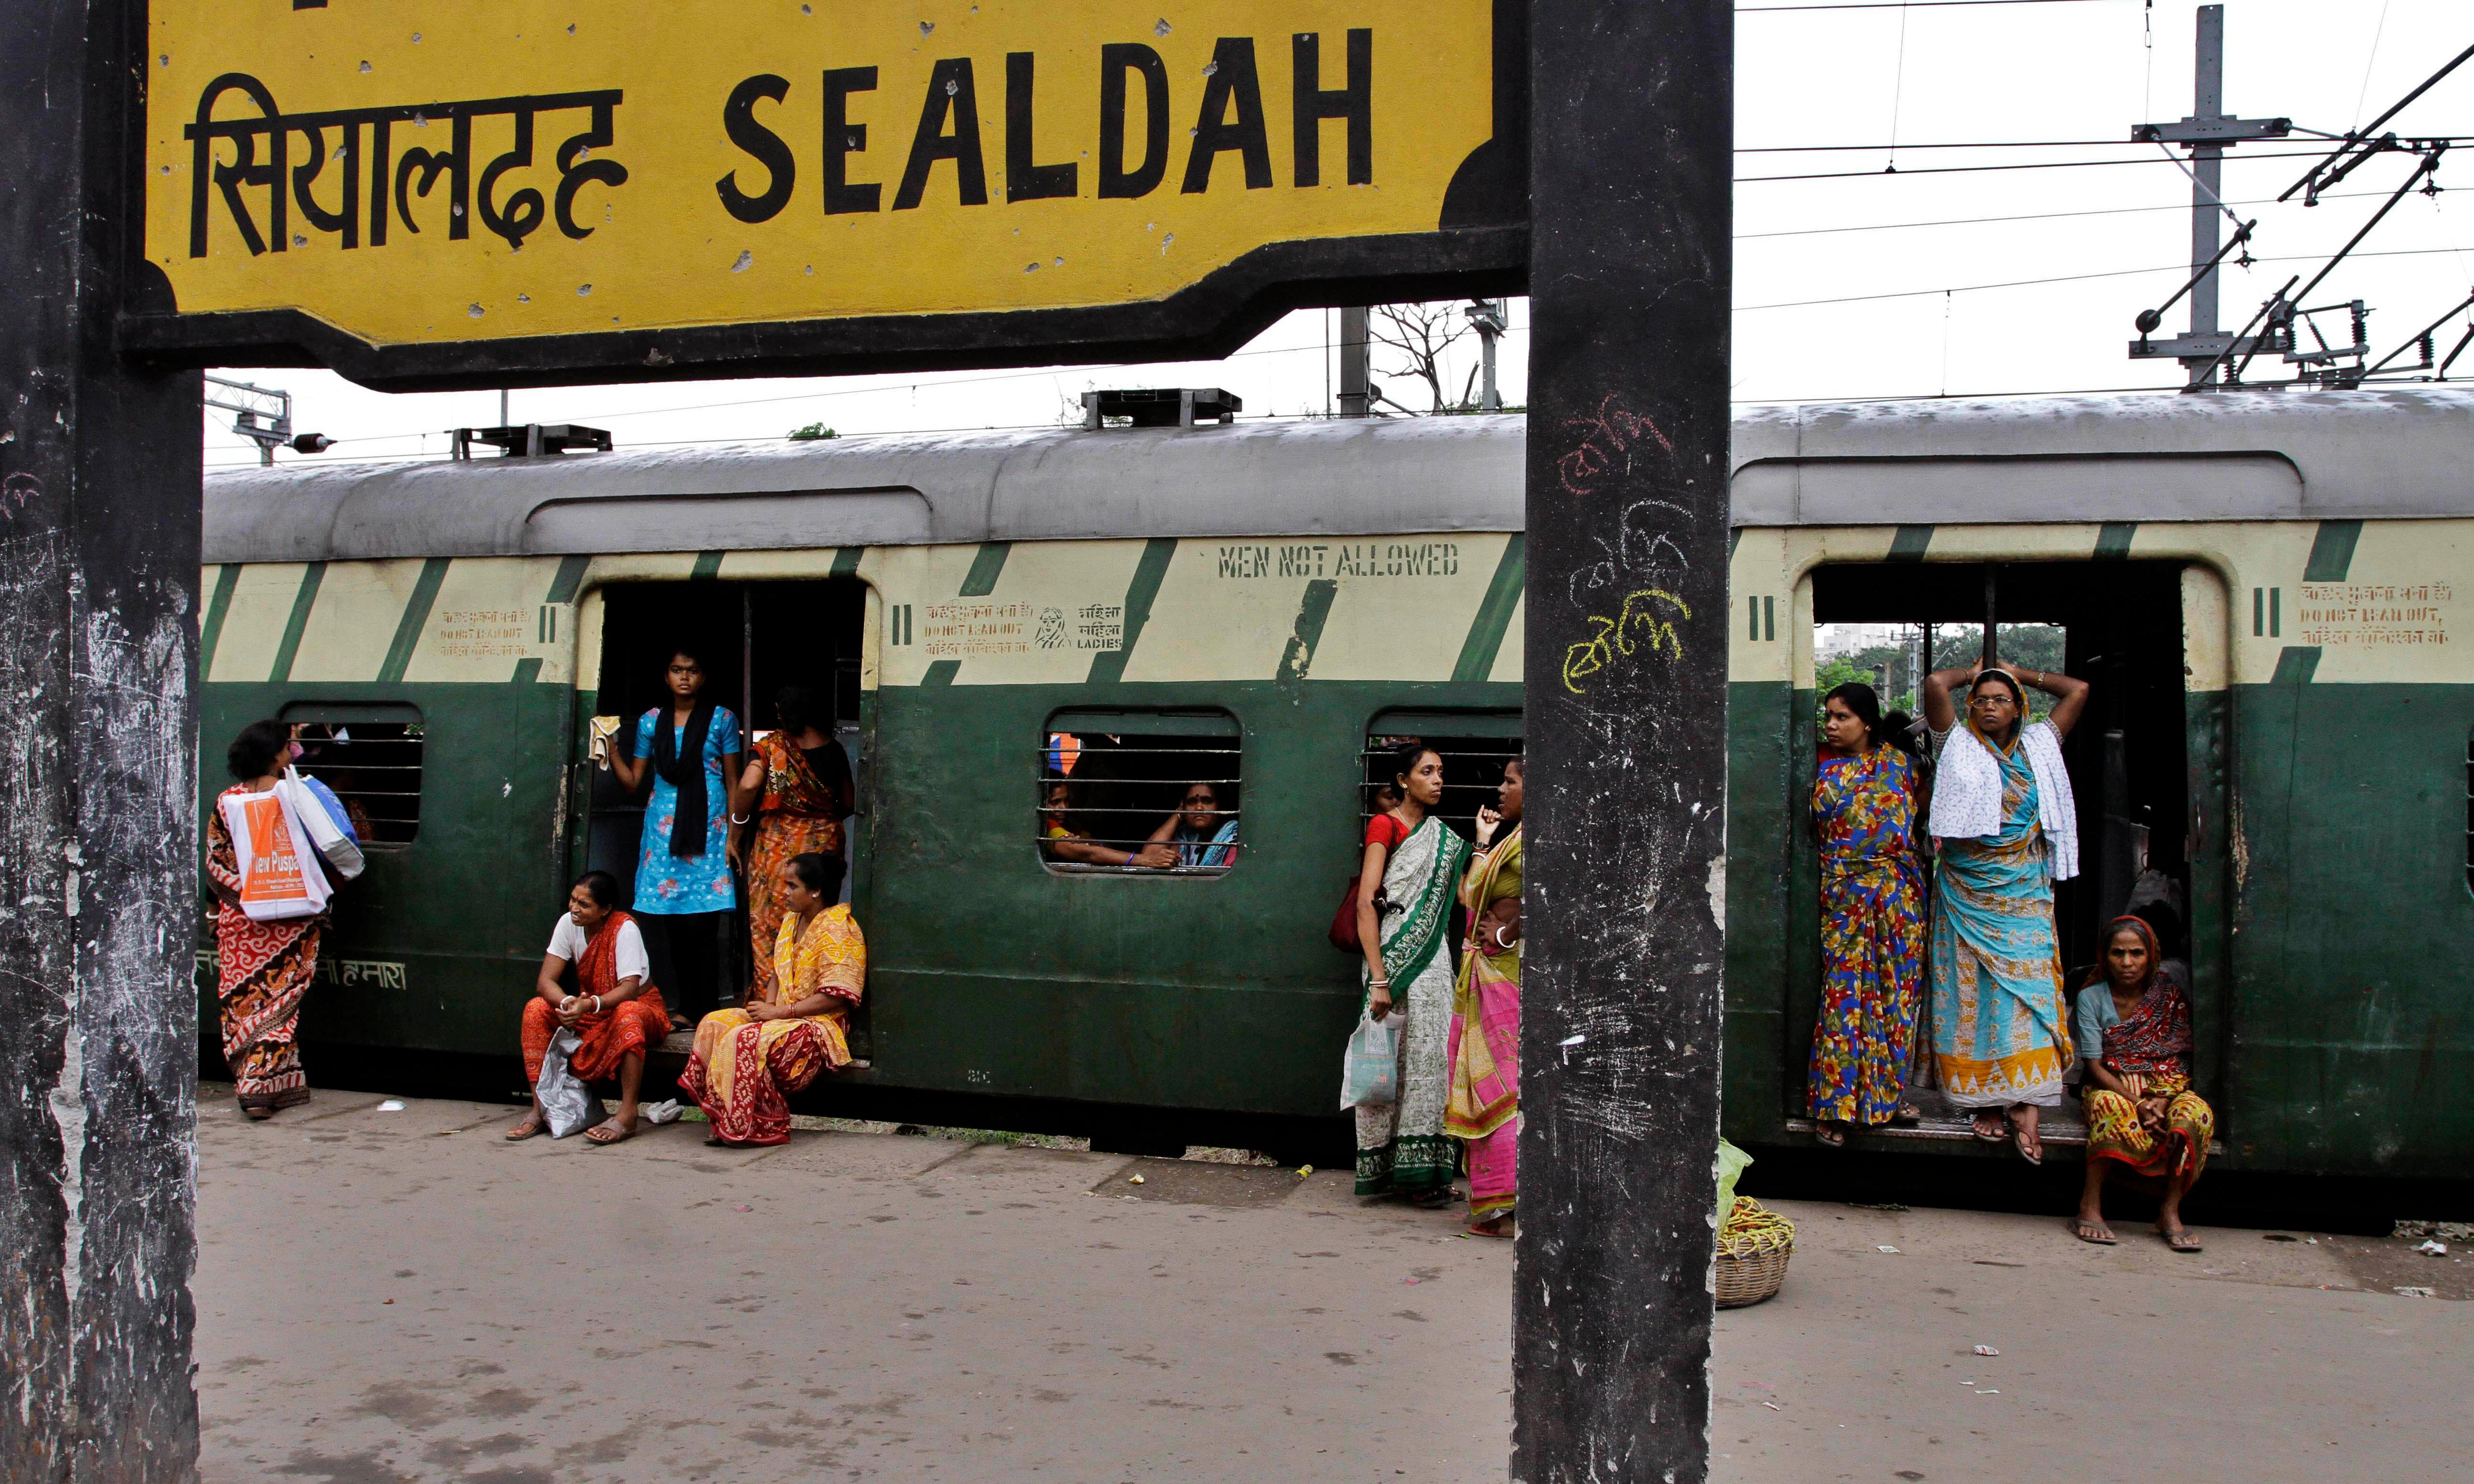 The TV show exposing the misery of India's 24-hour train delays